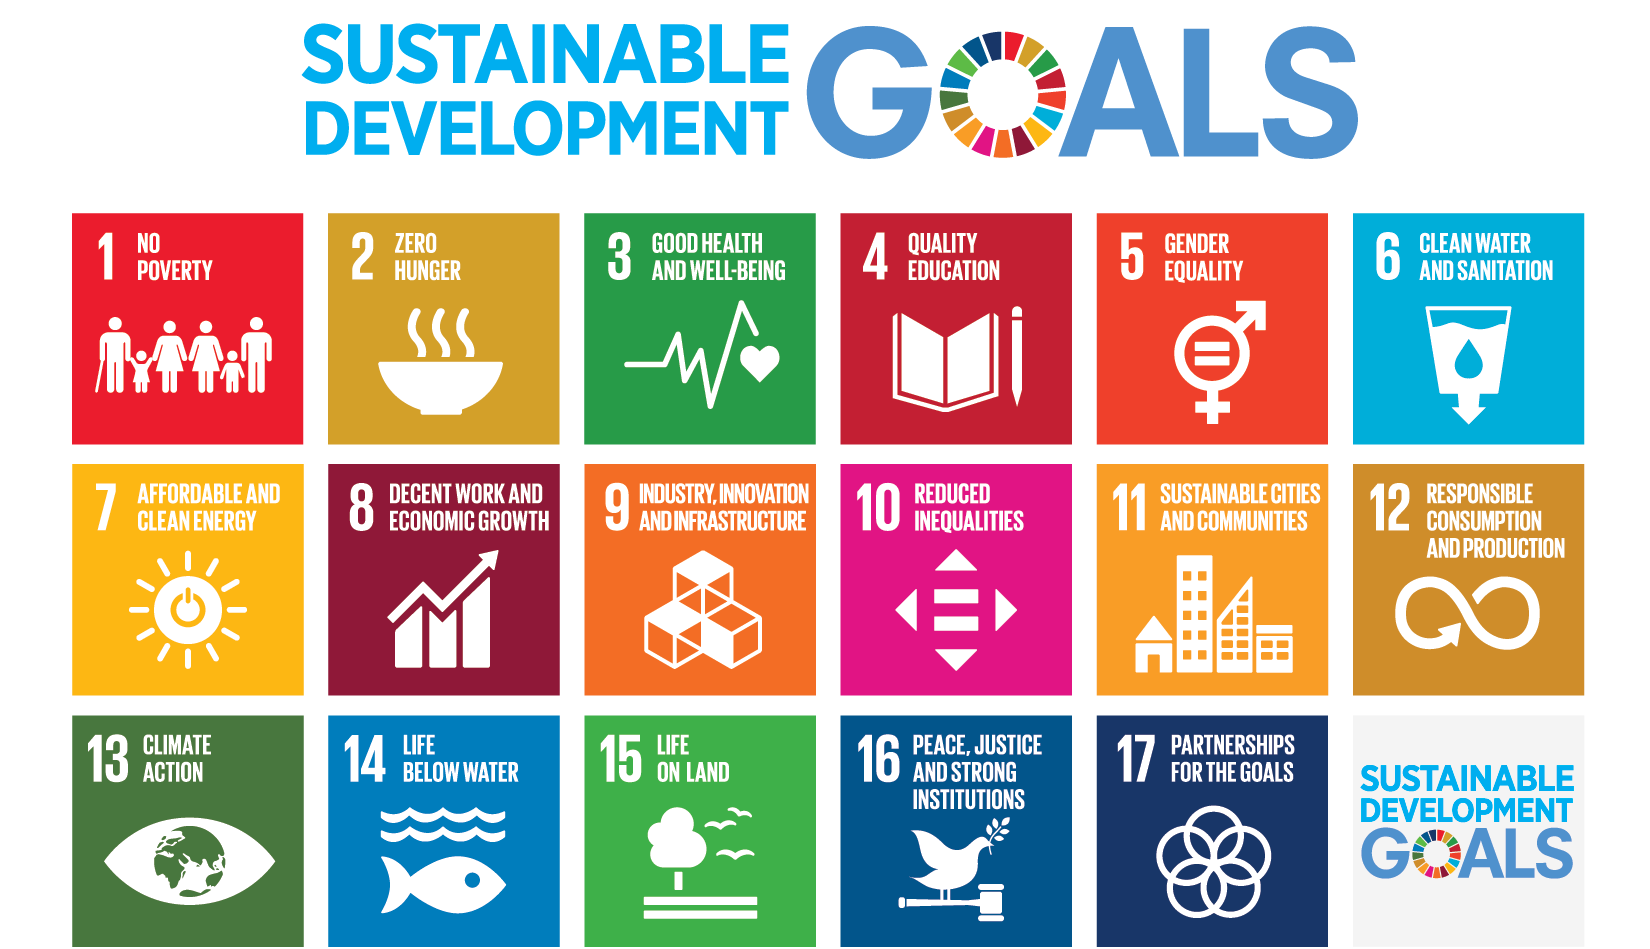 Sustainable Development Goals icons in a grid pattern